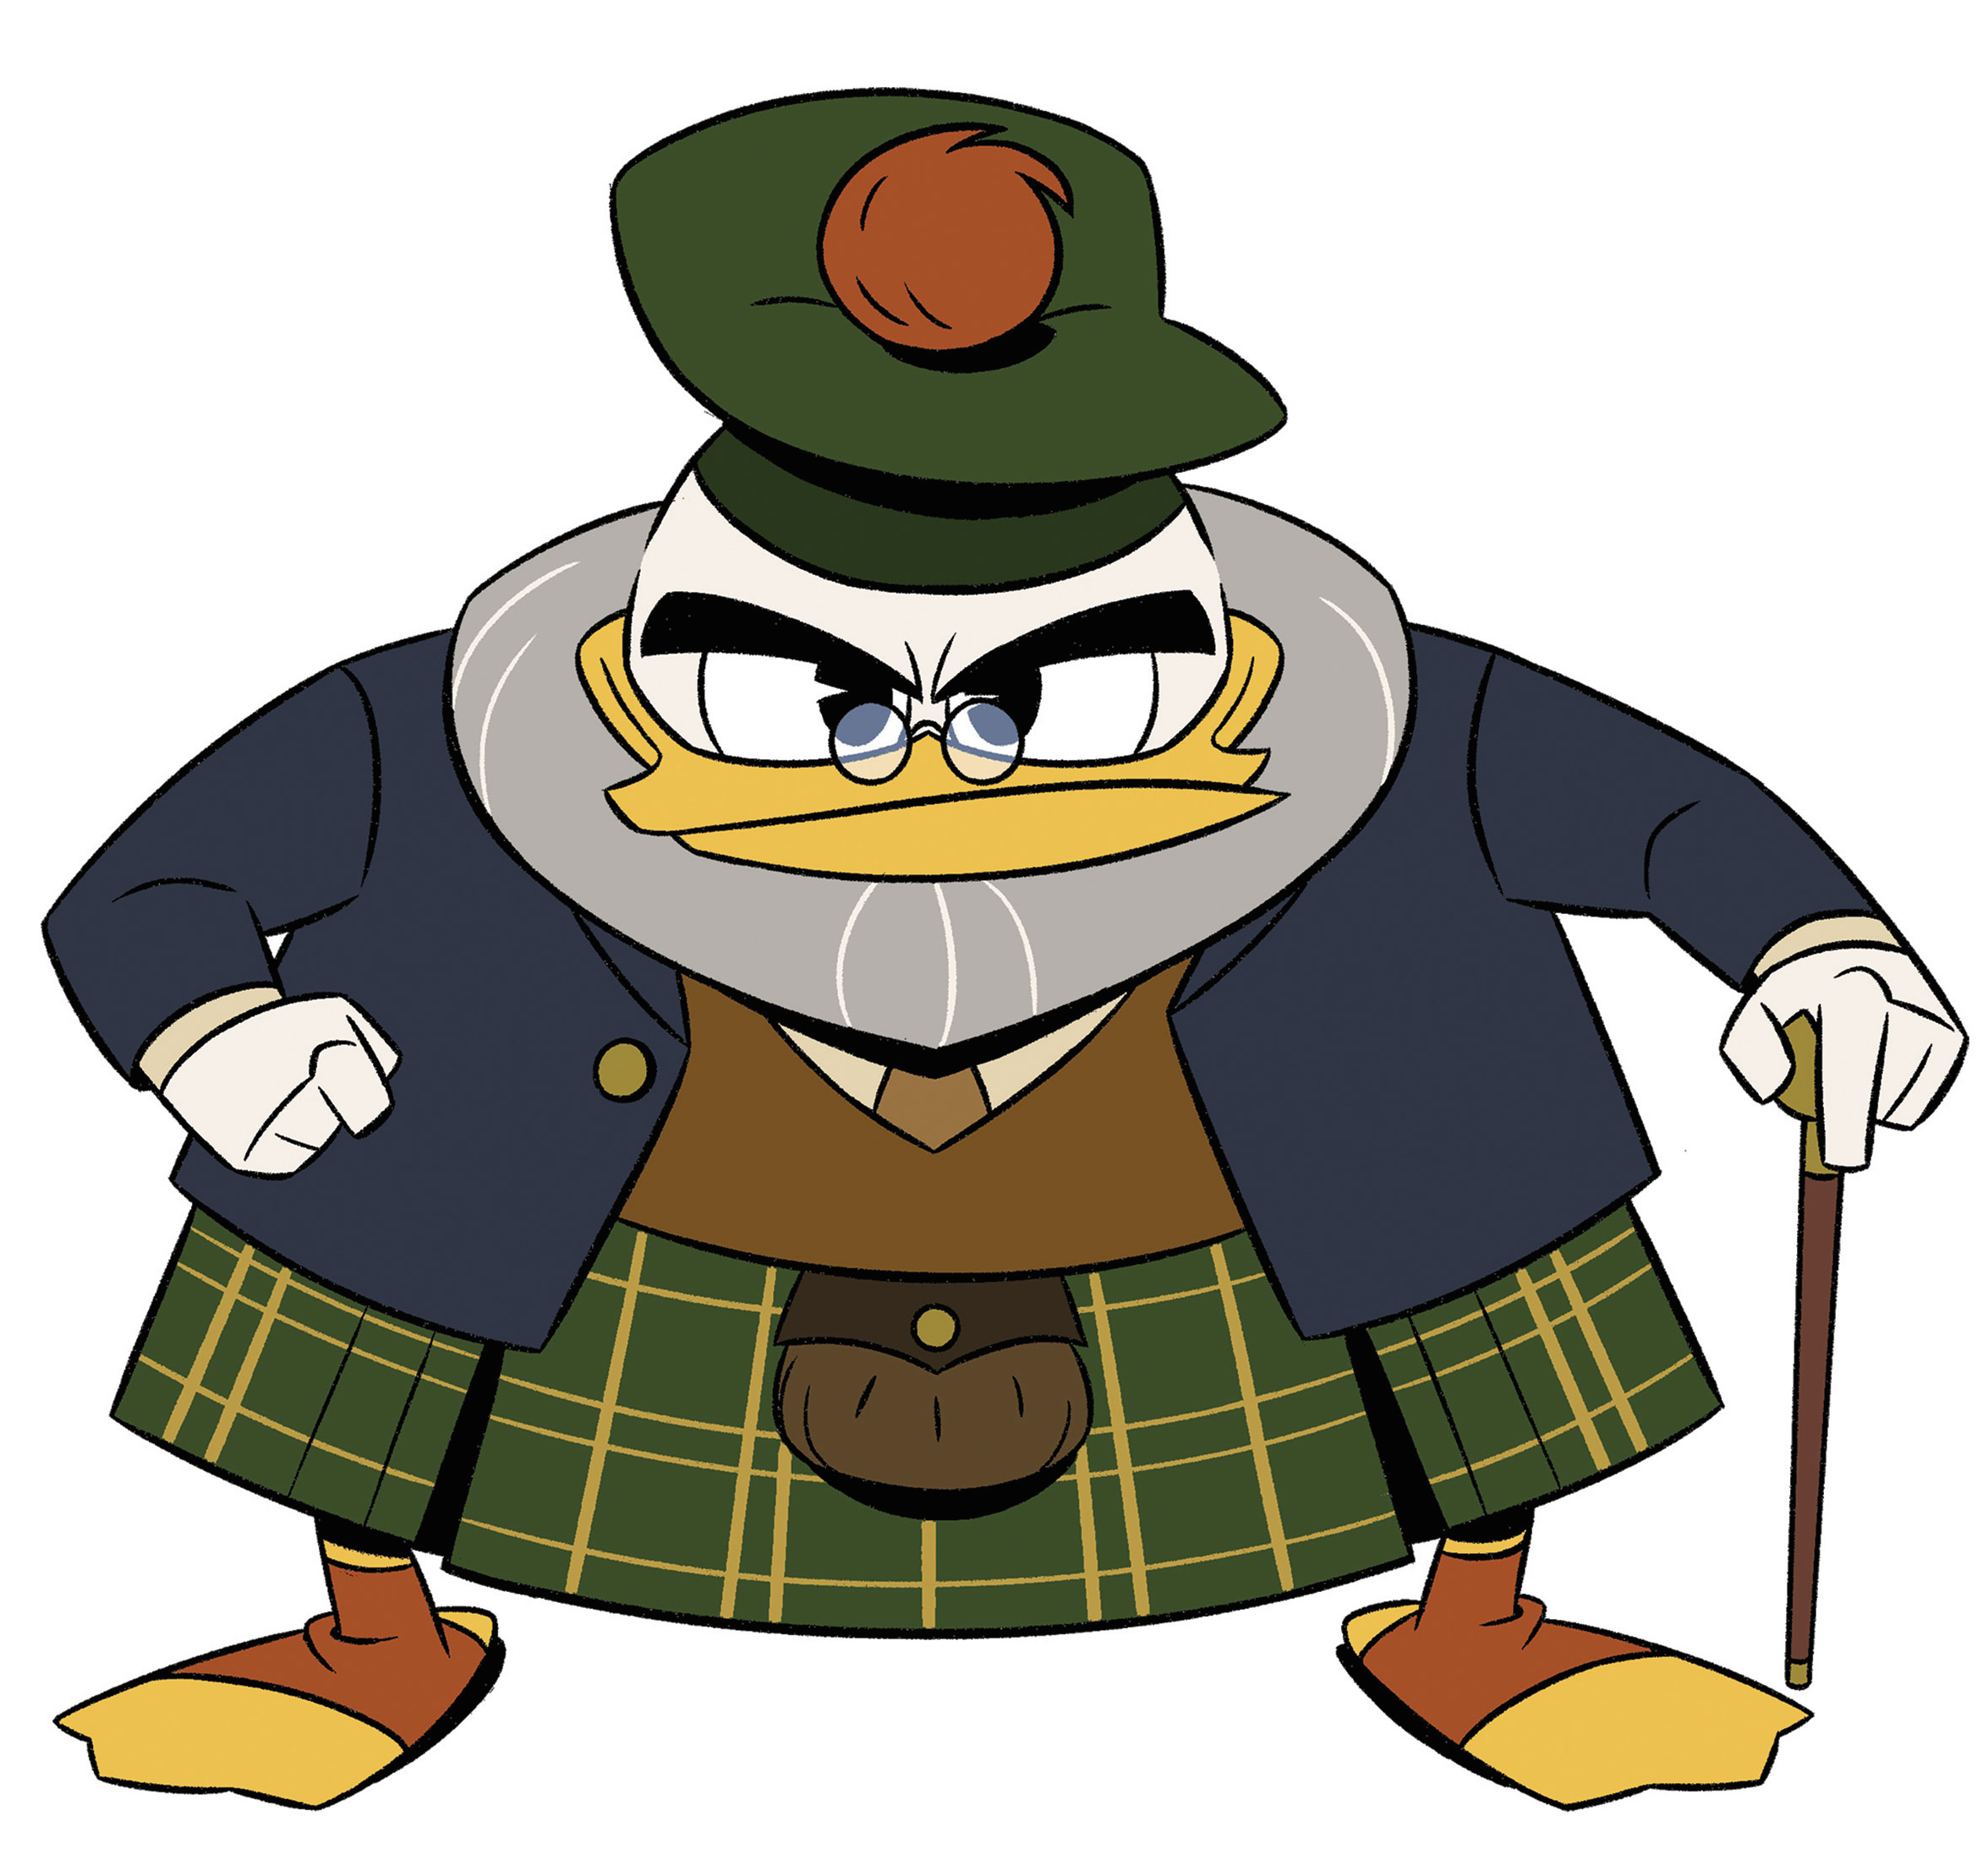 Flintheart Glomgold (2017 Continuum)